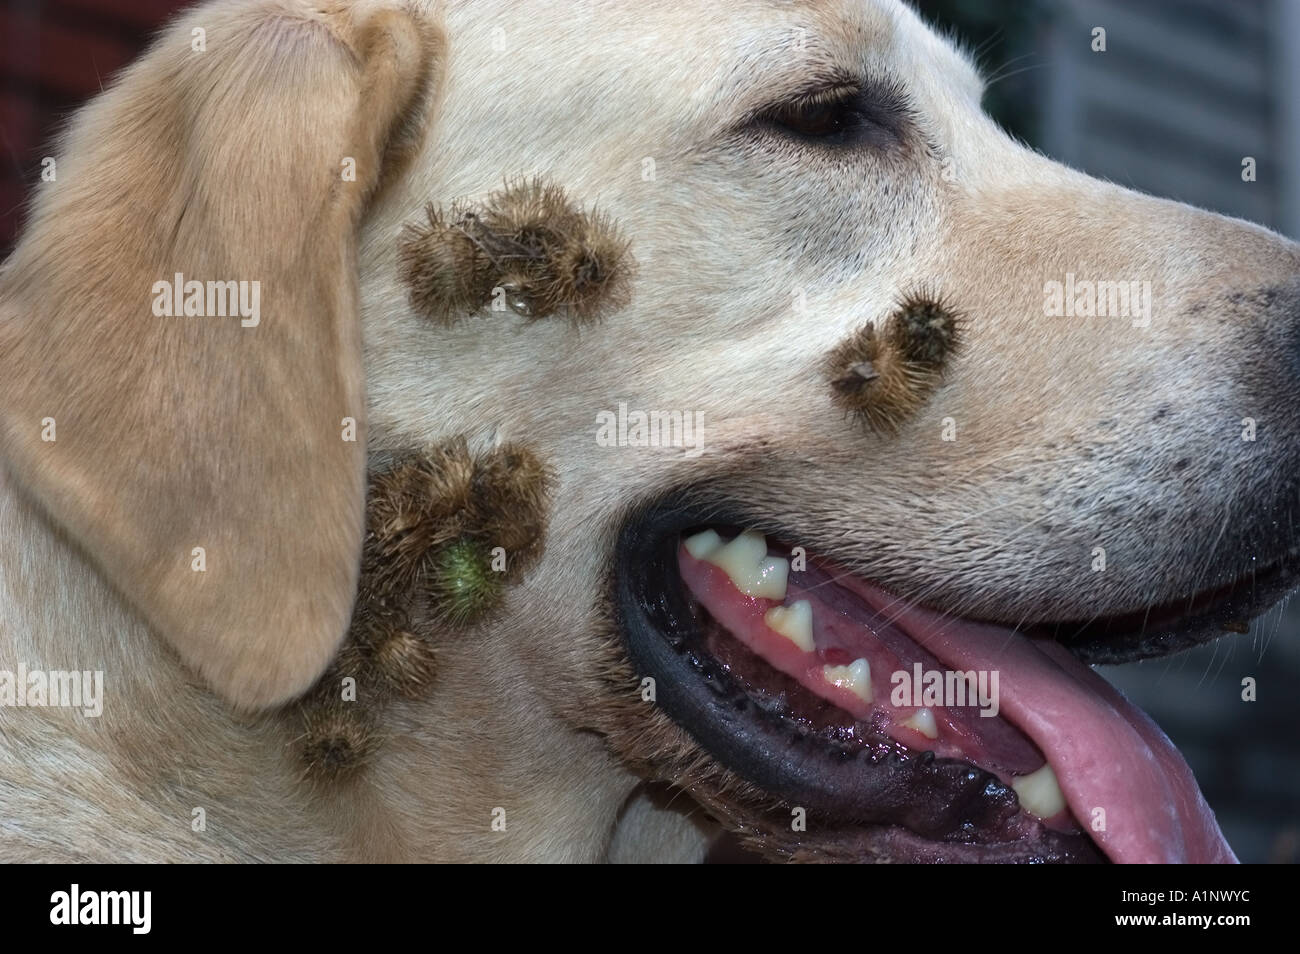 Burdock Burs On Yellow Lab Puppy Stock Photo 5888123 Alamy